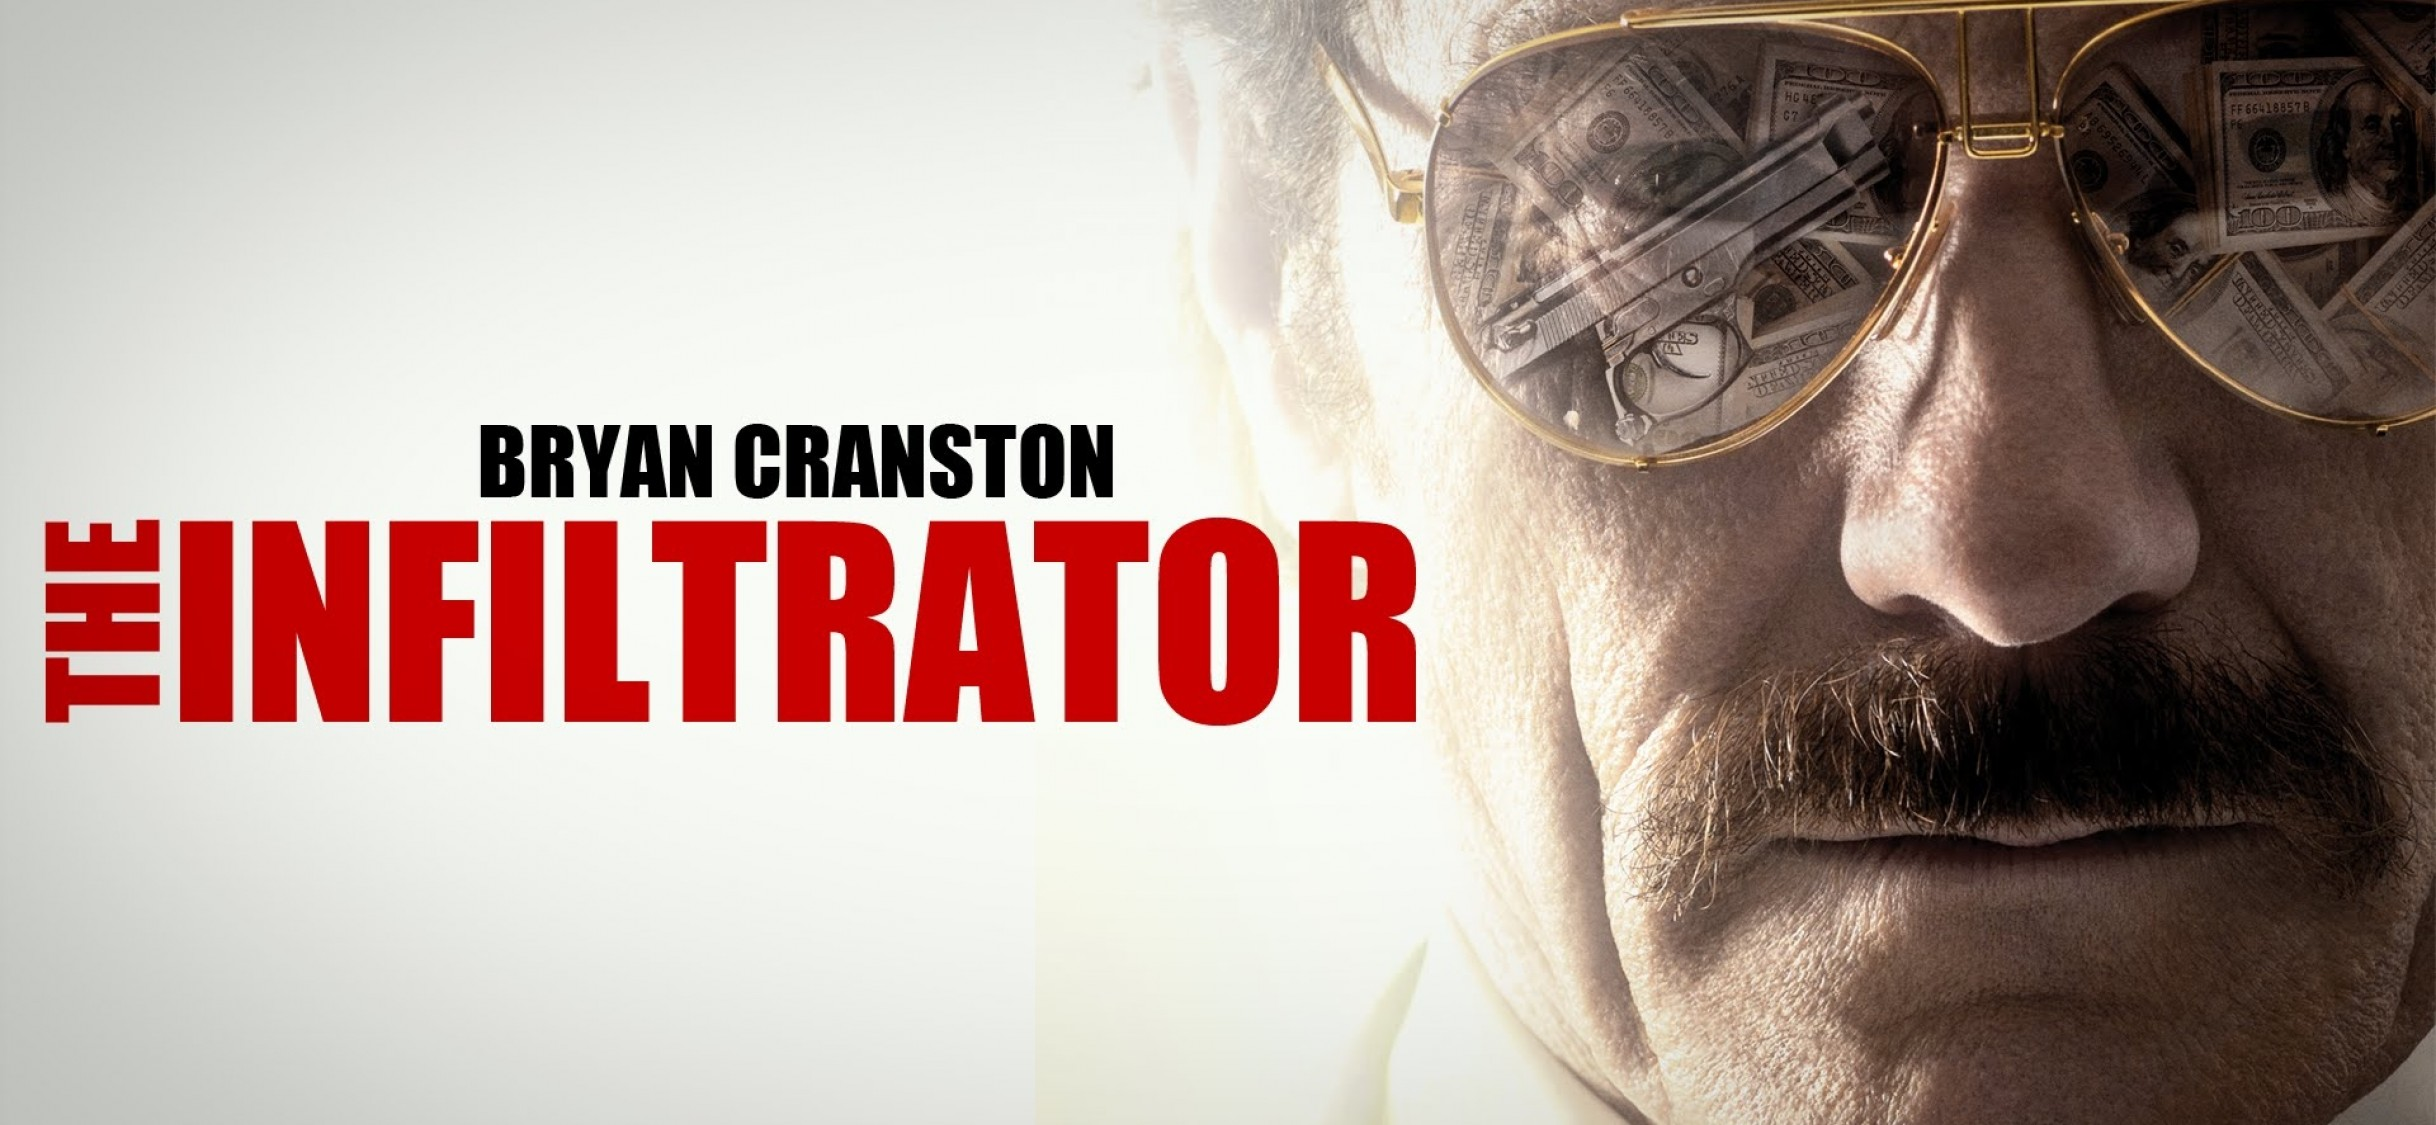 The Inflitrator HD Wallpaper